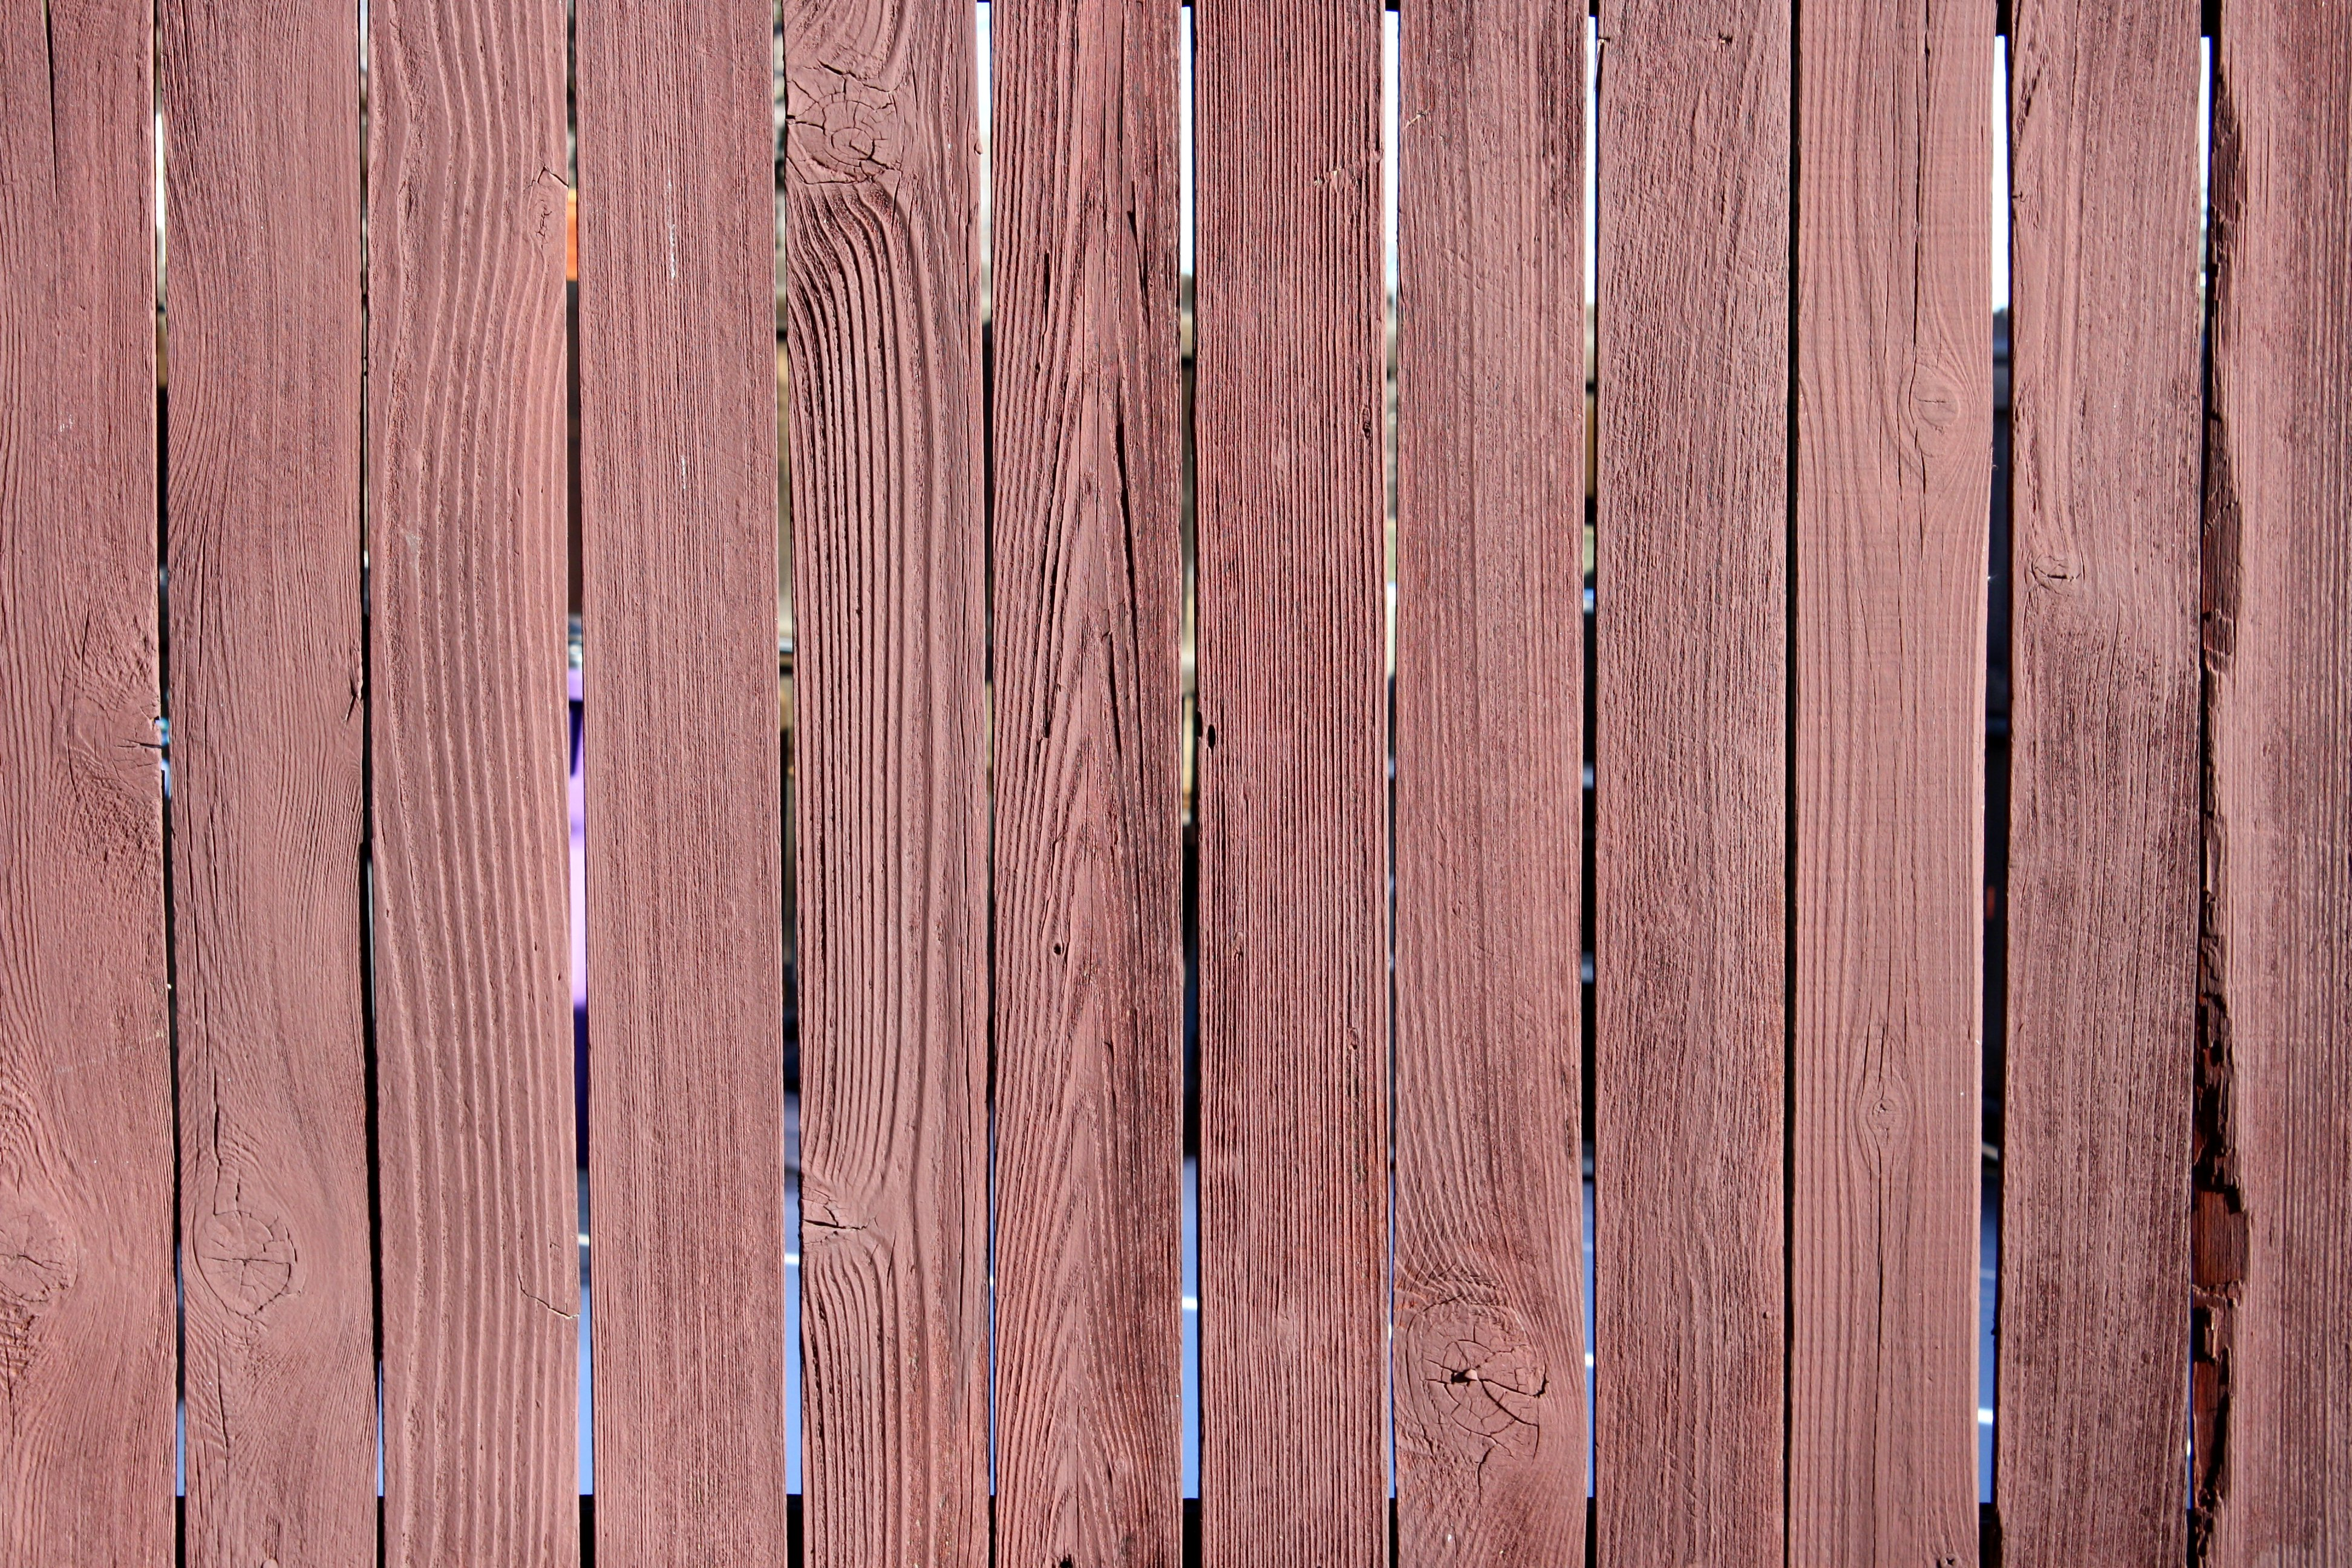 Wood Fence Texture : Wooden Fence Texture Red stained fence texture